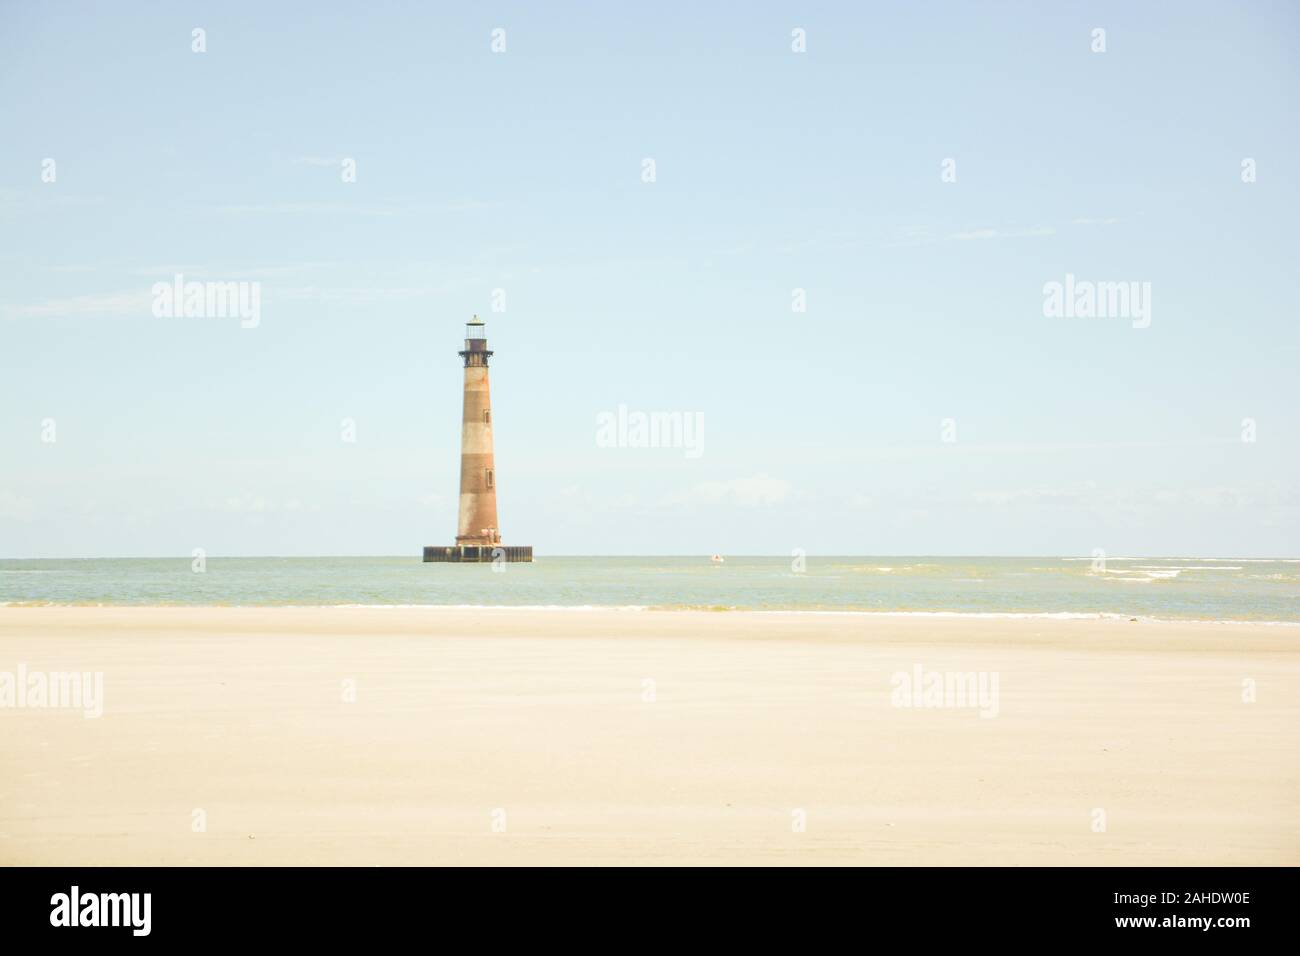 The iconic lighthouse, now on the National Register of Historic Places, rises above the seashore on Morris Island near Charleston, South Carolina. Stock Photo